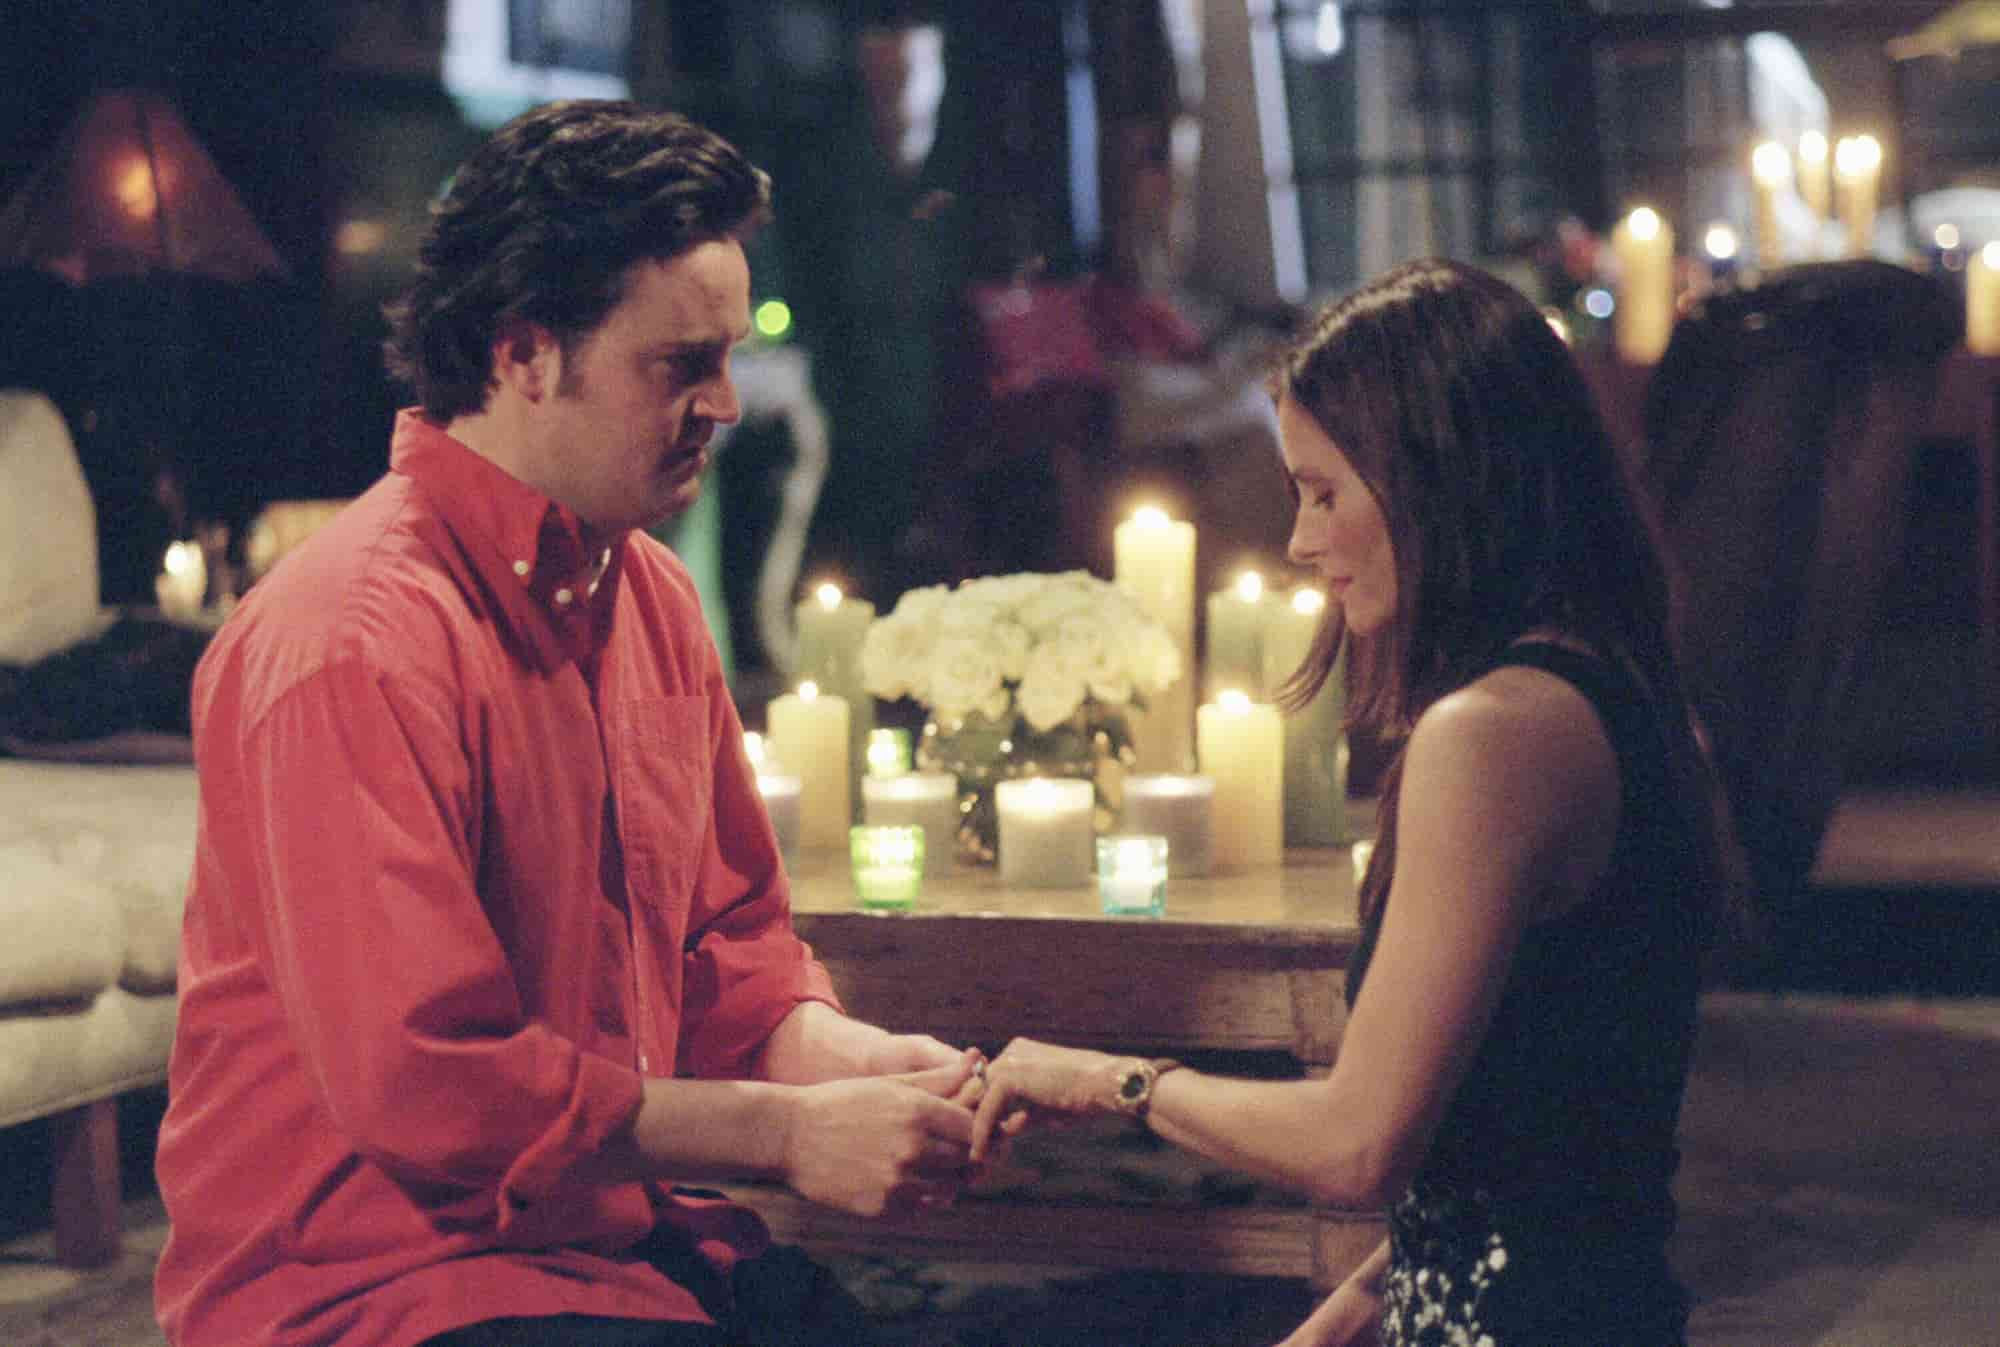 monica proposing chandler to marry her